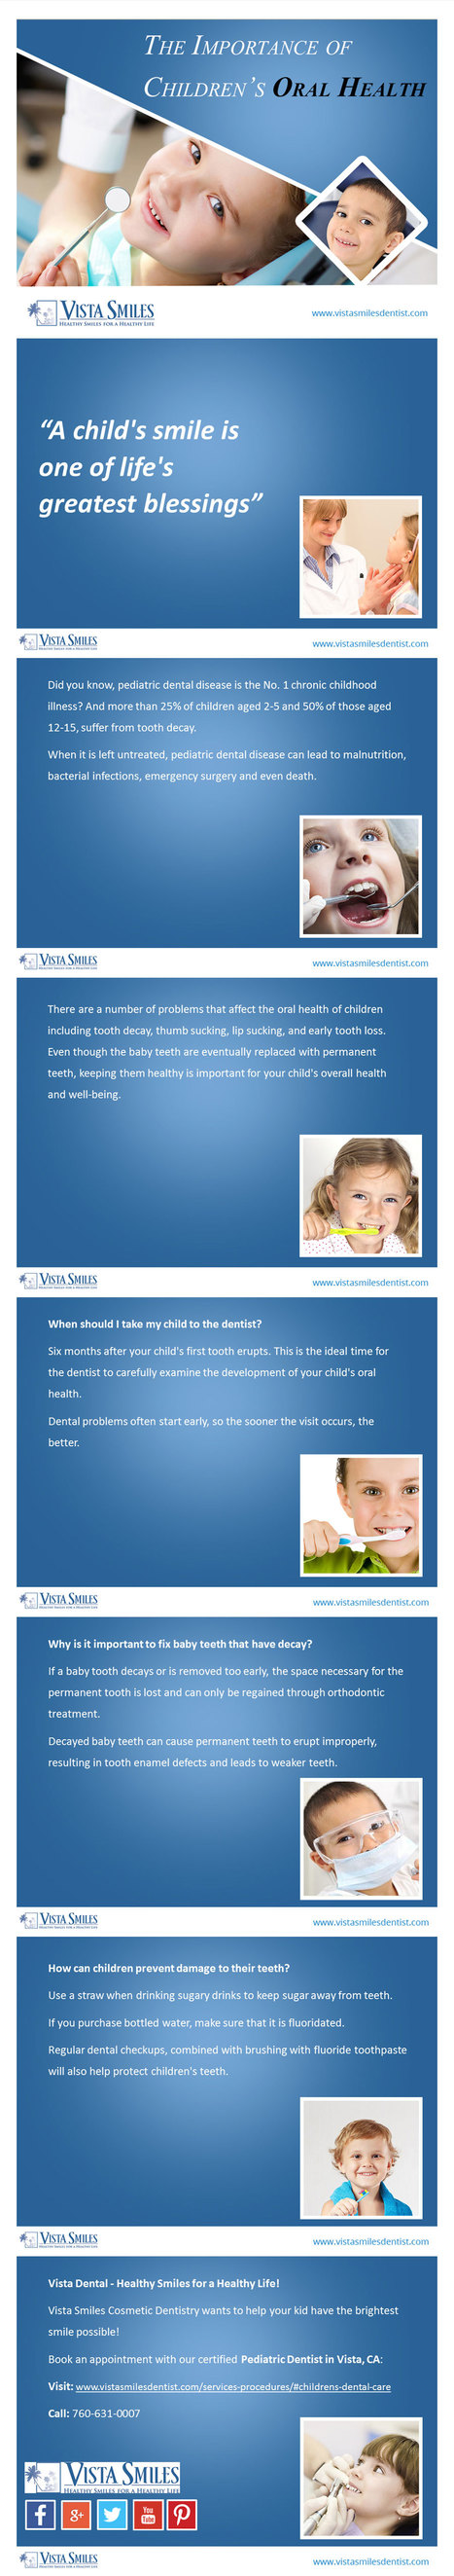 Pediatric Dentist in Vista, CA - Take Care of Your Kid's Oral Health | Early Childhood Studies | Scoop.it